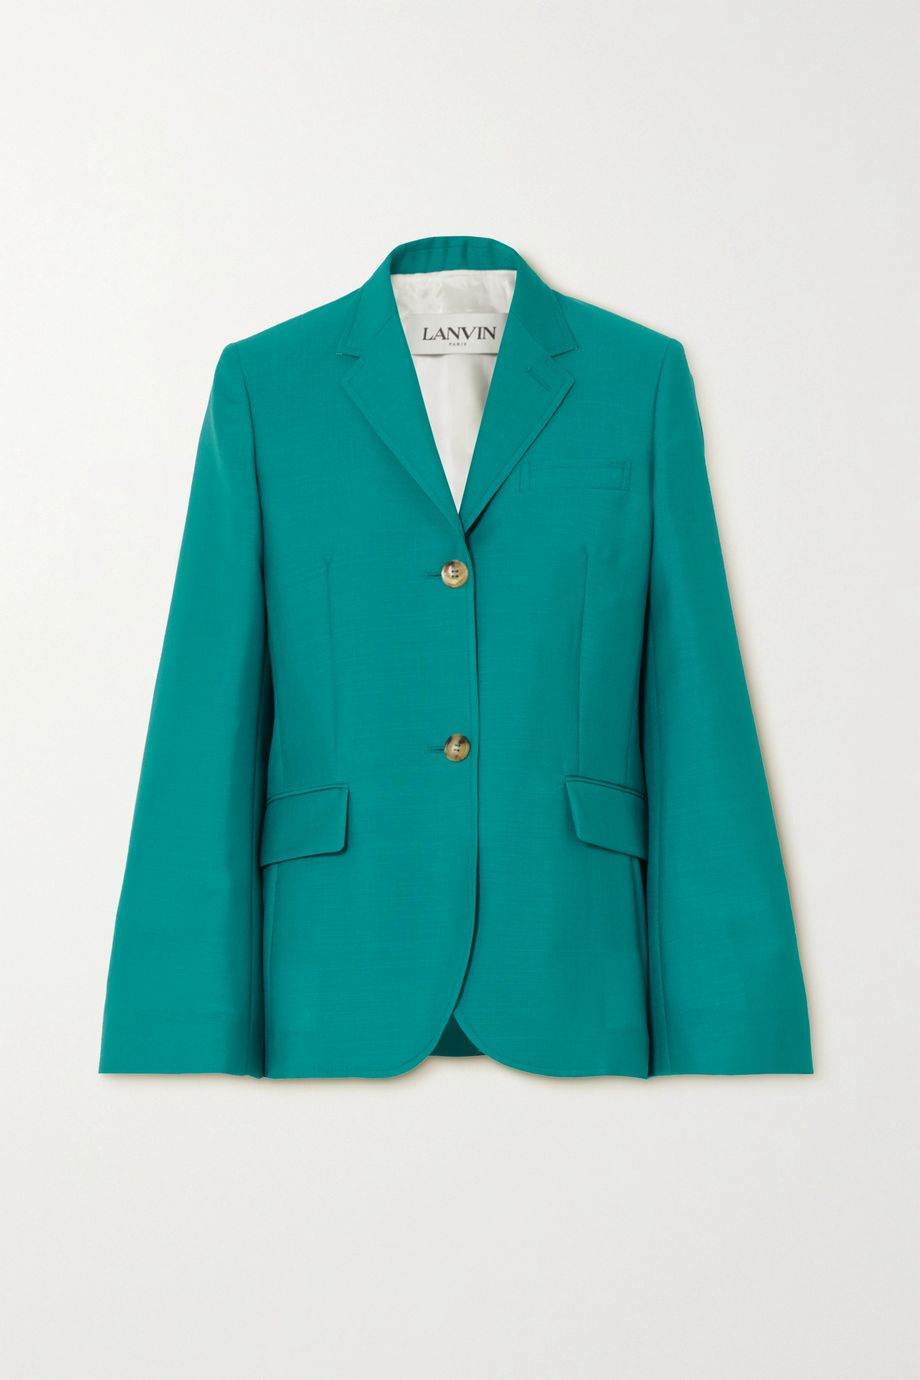 Lanvin Mohair and wool-blend blazer